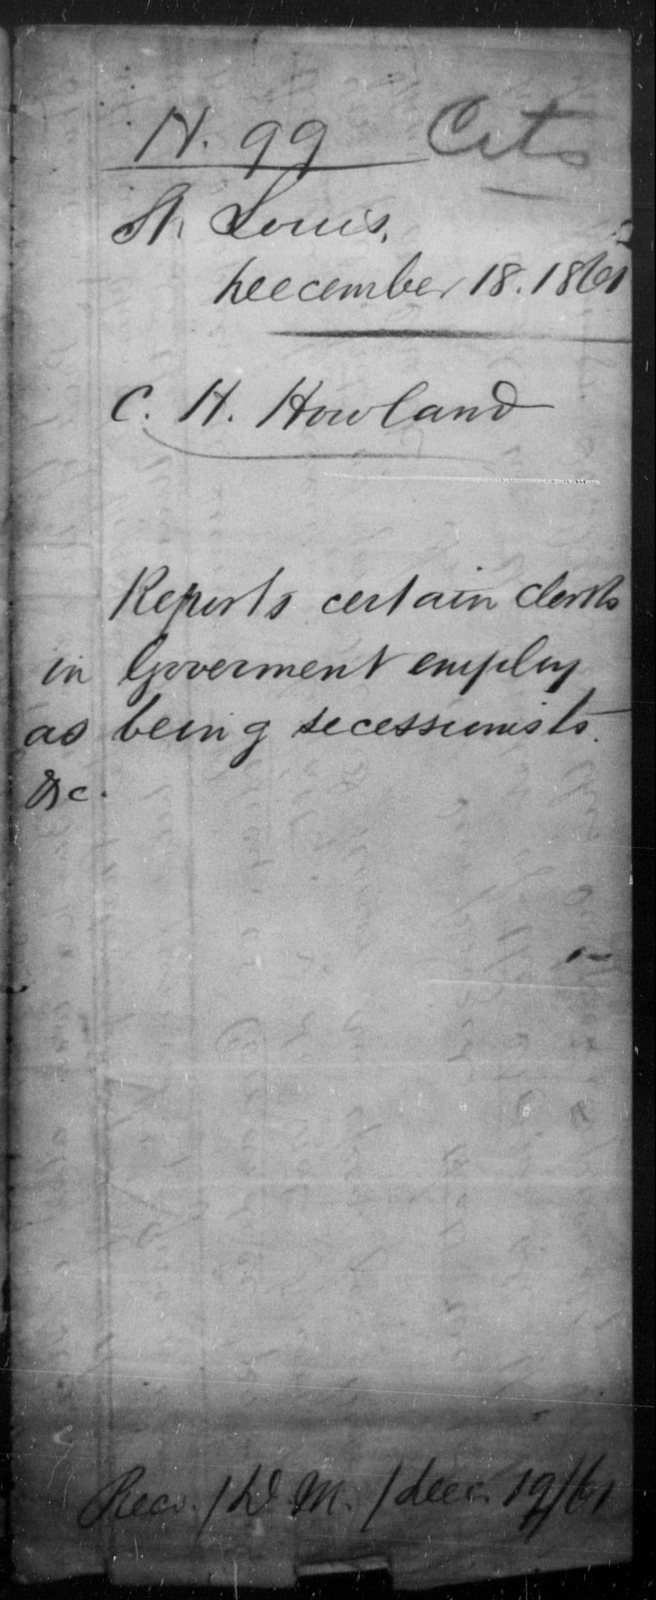 Howland, C H - State: [Blank] - Year: 1861